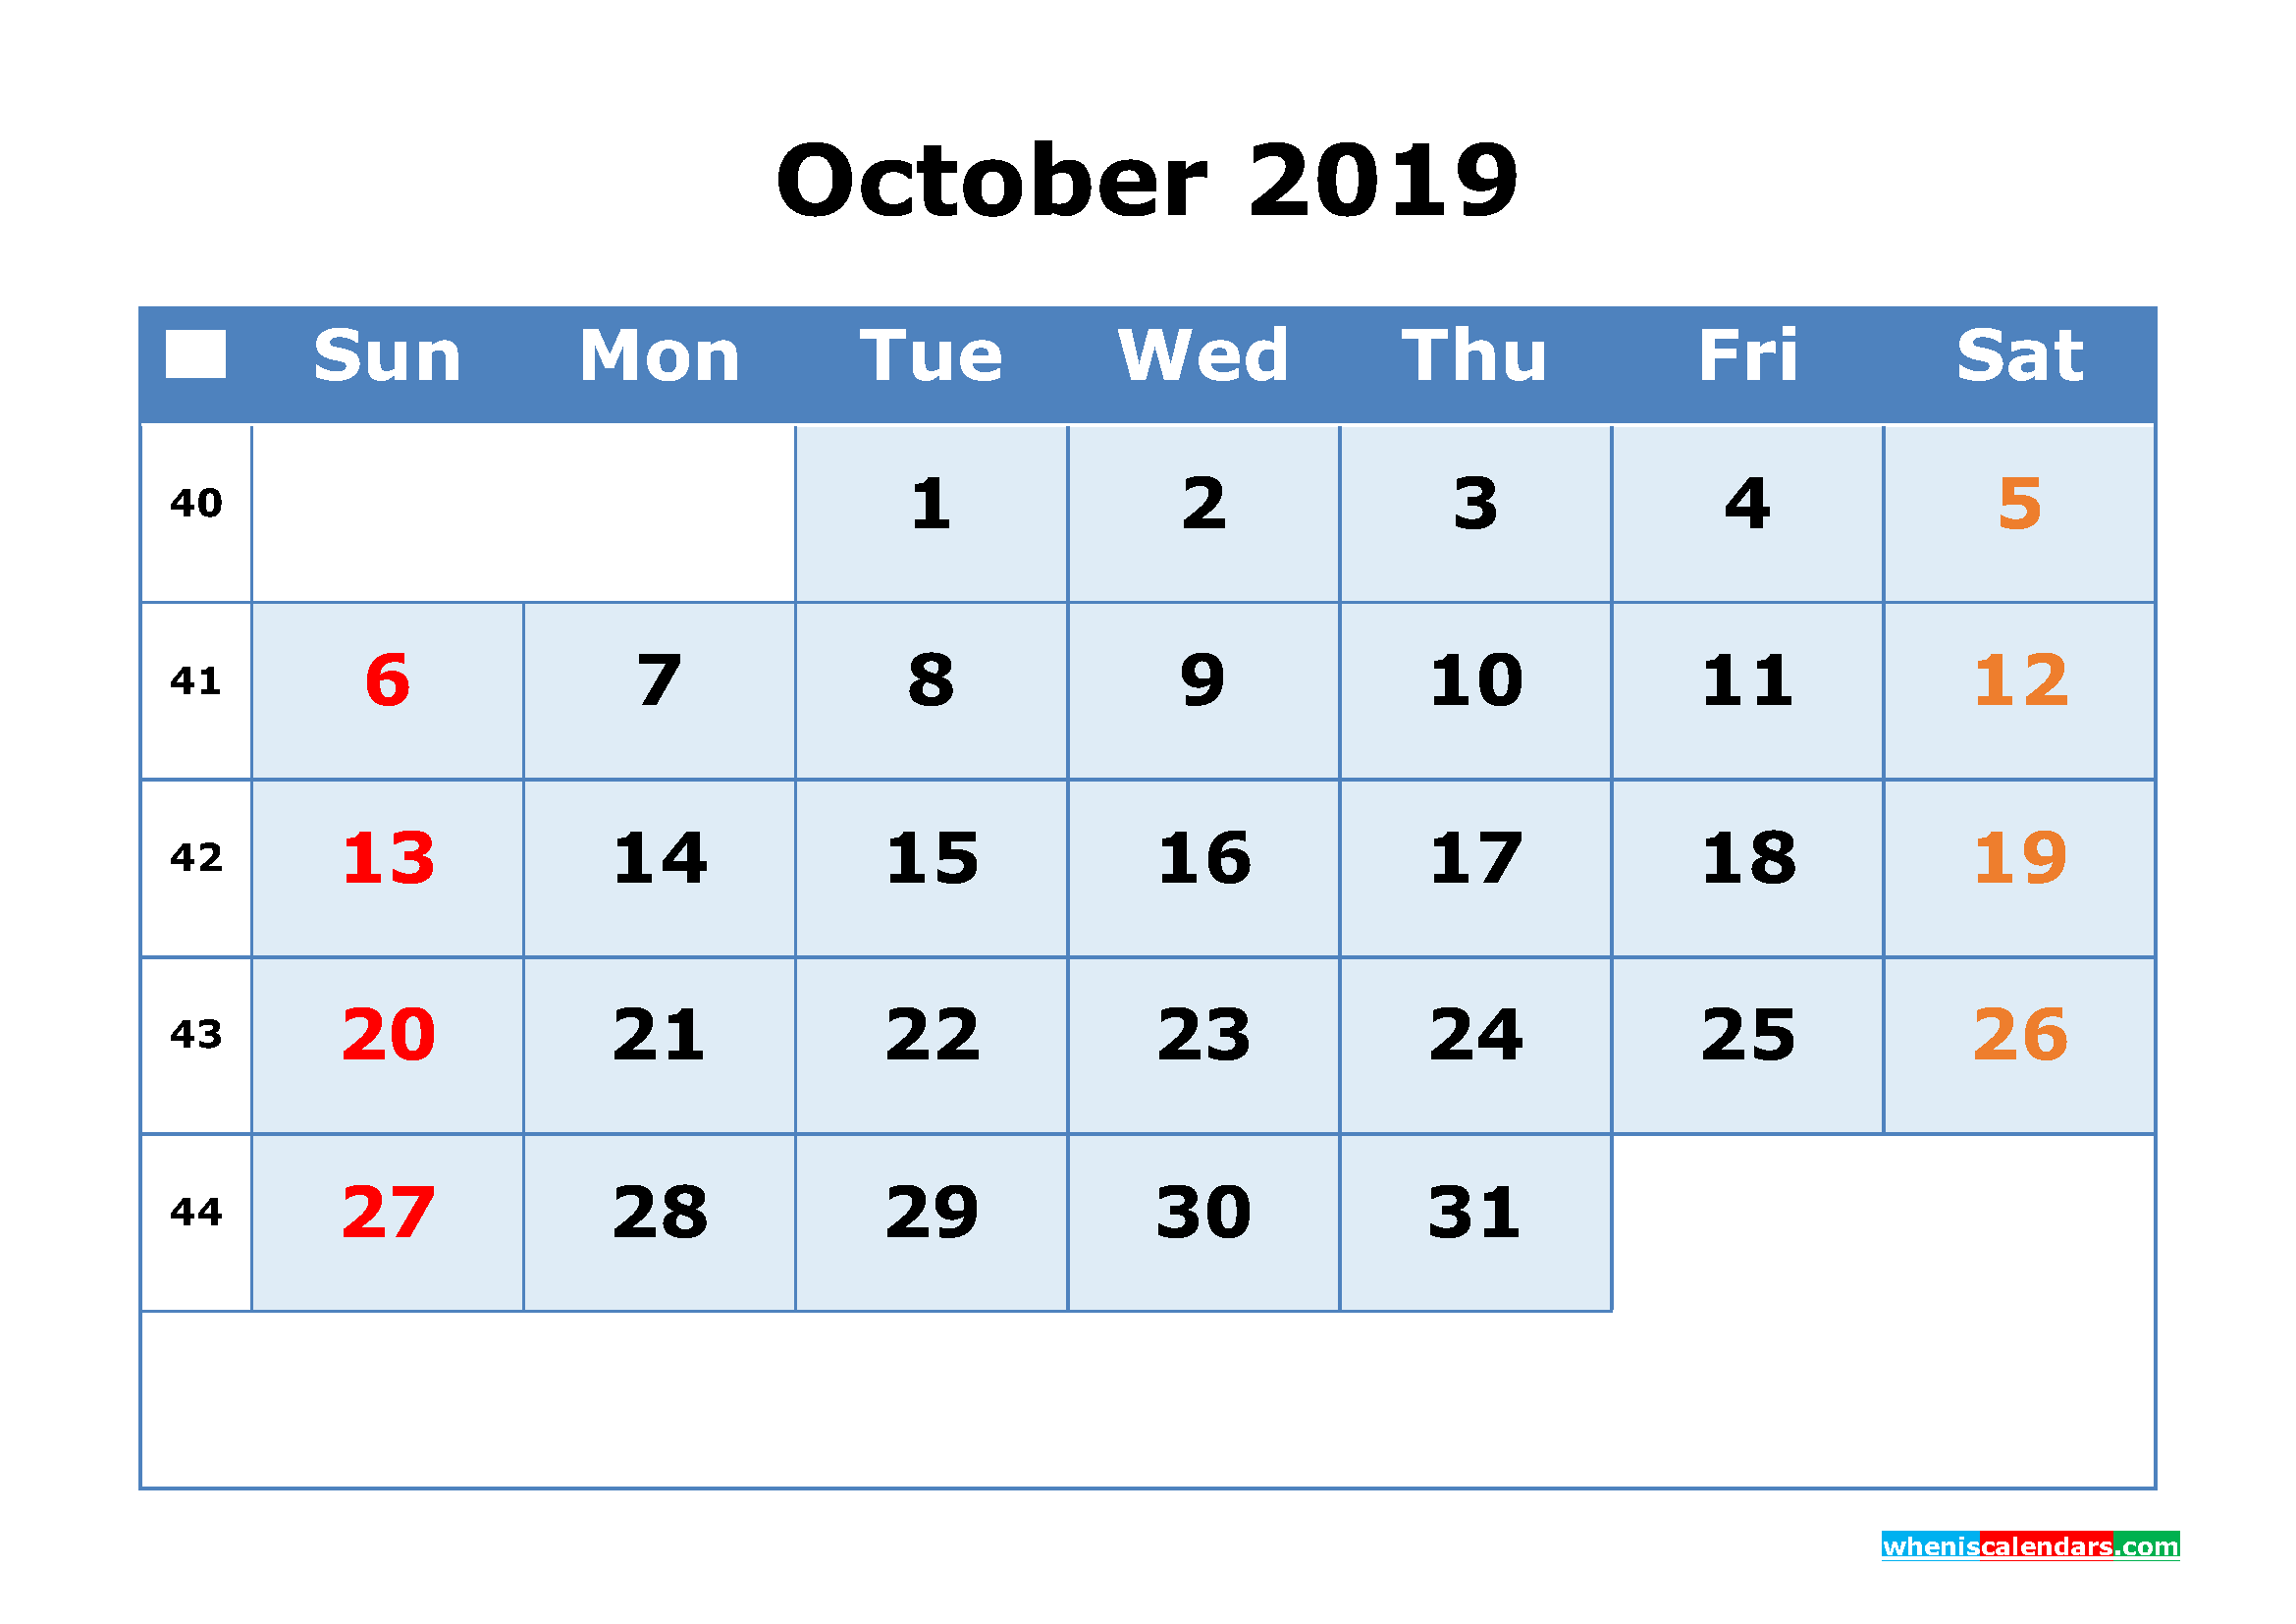 October 2019 Printable Calendar with Week Numbers as PDF, JPG